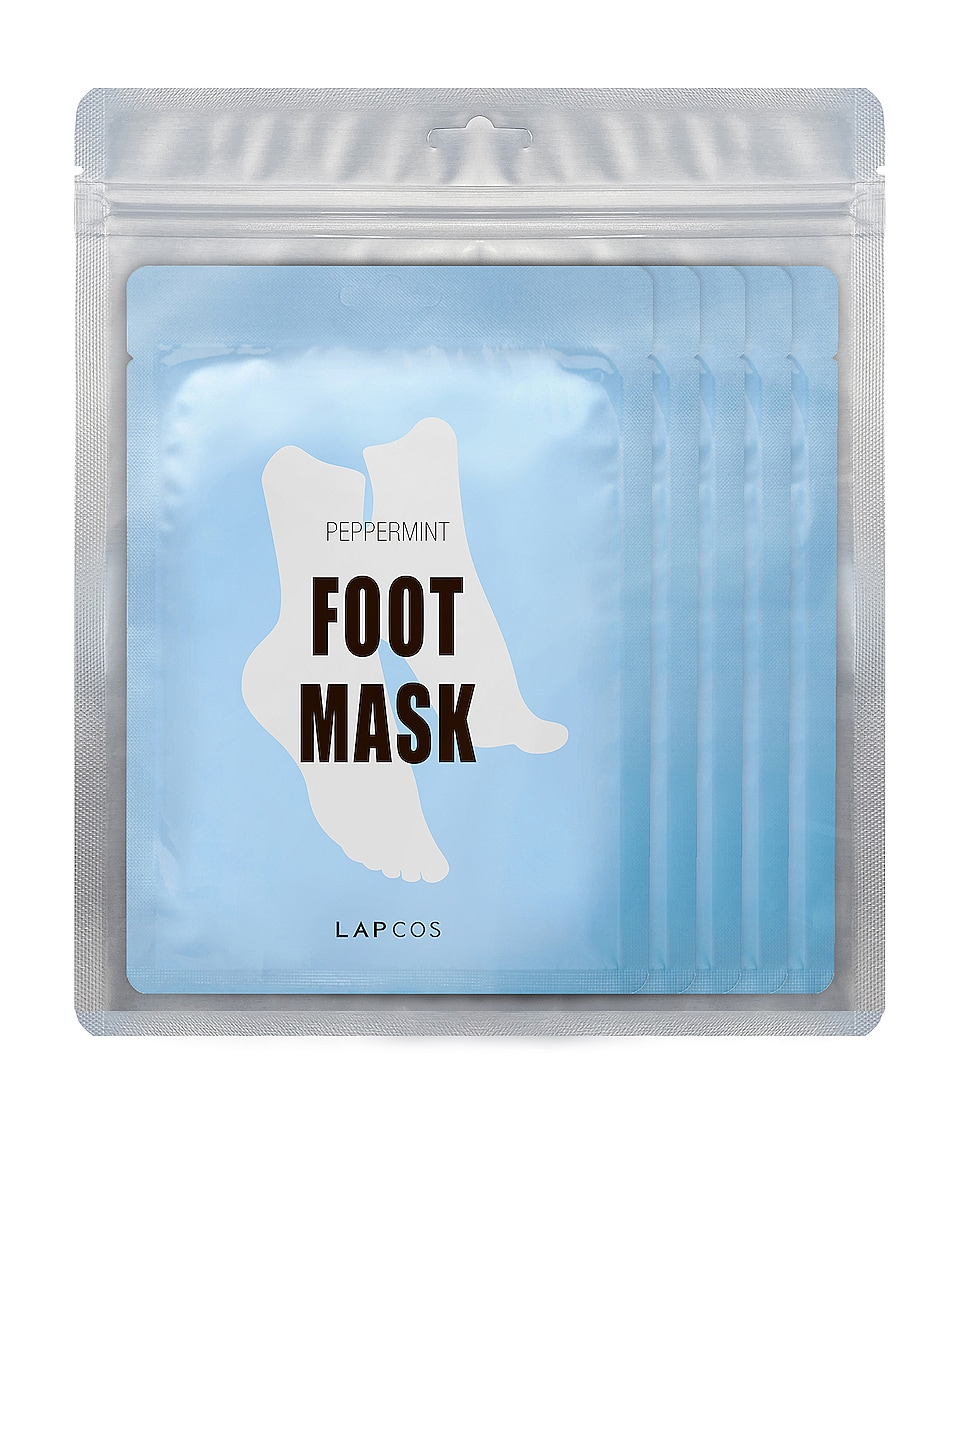 LAPCOS Peppermint Cooling Foot Mask 5 Pack